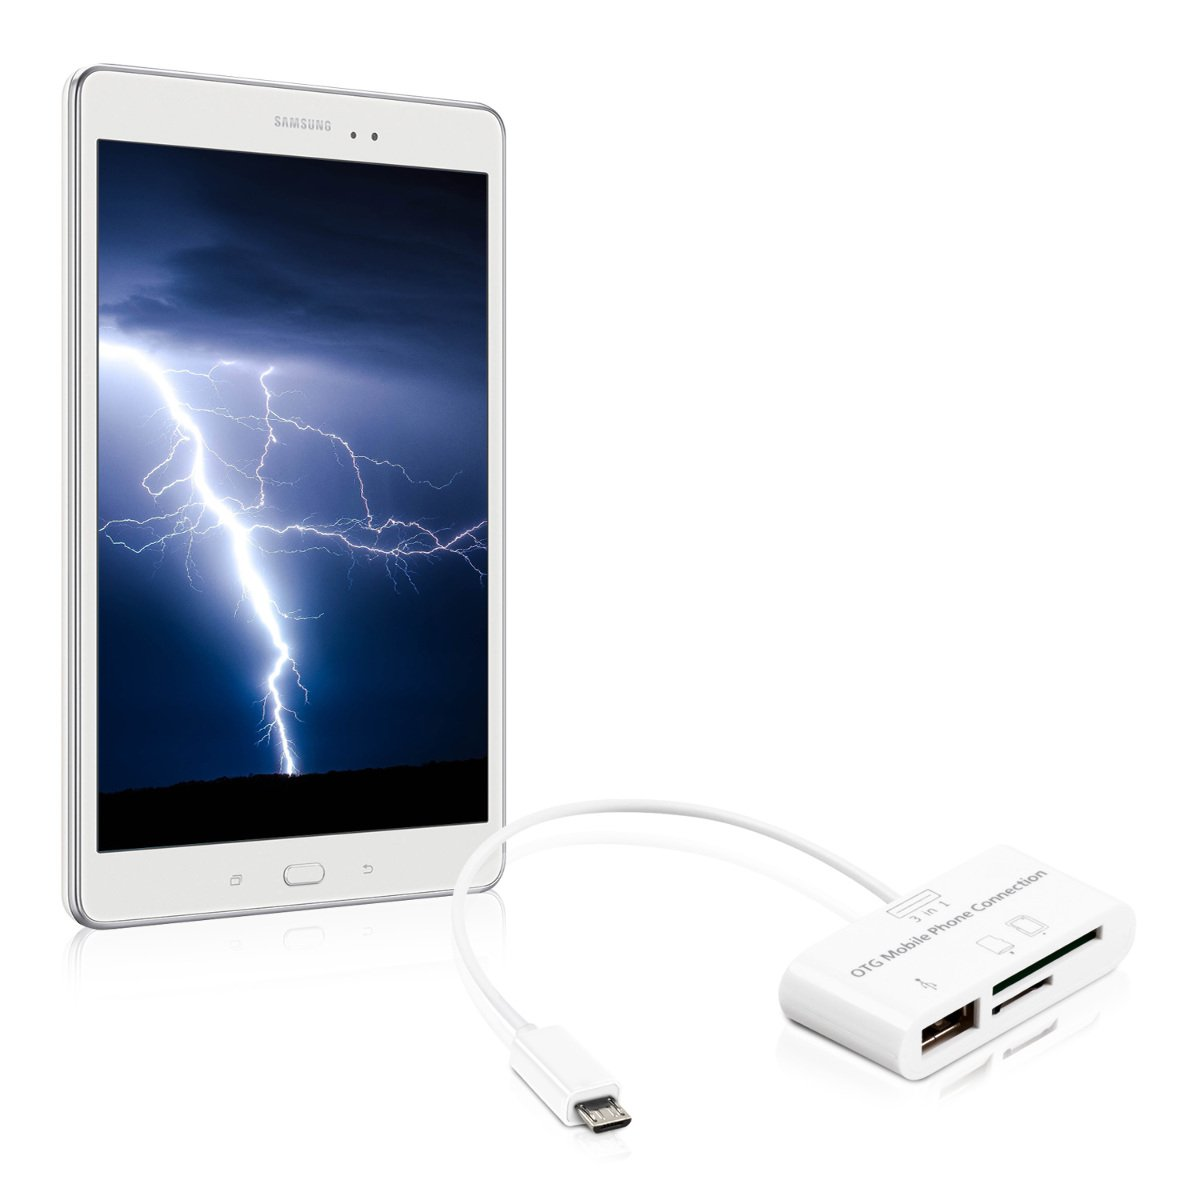 kwmobile 3in1 Micro USB Adapter Card Reader OTG for Samsung Galaxy Tab S2 9.7 White KW-Commerce 36806